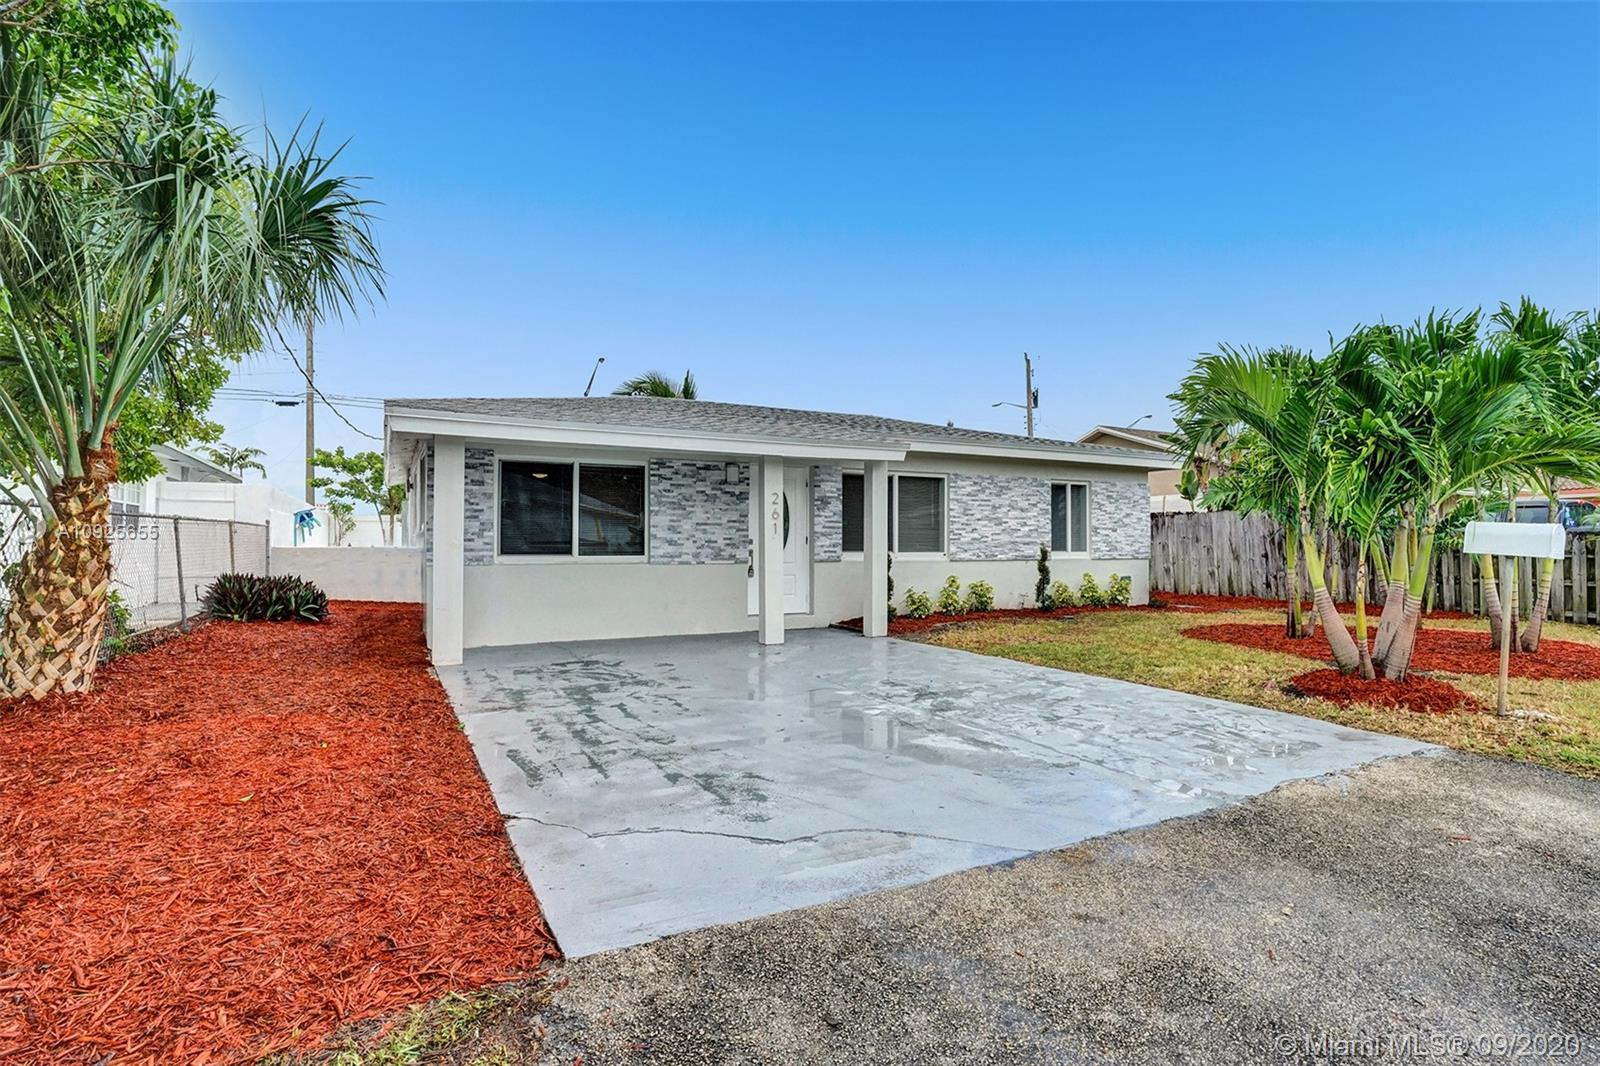 BEAUTIFULLY FULLY REMODELED 3 BEDROOM 2 BATHROOM HOME WITH VERY LARGE POOL IN THE HEART OF OAKLAND PARK! PERFECT TURN-KEY HOME OR VACATION RENTAL OPPORTUNITY! HOME FEATURES ALL HURRICANE IMPACT WINDOWS AND DOORS, 2020 SHINGLE ROOF, 2015 A/C UNIT, 2016 WATER HEATER, NEW BATHROOMS, NEW IRRIGATION SYSTEMS WITH NEW PLANTS, NEW CUSTOM KITCHEN WITH HIGH-END EUROPEAN CABINETS, QUARTZ COUNTERTOP, RECESSED LIGHTING THROUGHOUT, BACKYARD WITH LARGE POOL NICE FOR ENTERTAINMENT, SPACIOUS DRIVEWAY, FRESHLY PAINTED INSIDE/OUT... MINUTES FROM SCHOOLS, BEACH, SHOPPING PLAZAS, ETC... HURRY THIS WONT LAST LONG!! *** BRAND NEW STAINLESS STEEL APPLIANCES WILL BE INSTALLED PRIOR TO CLOSING***